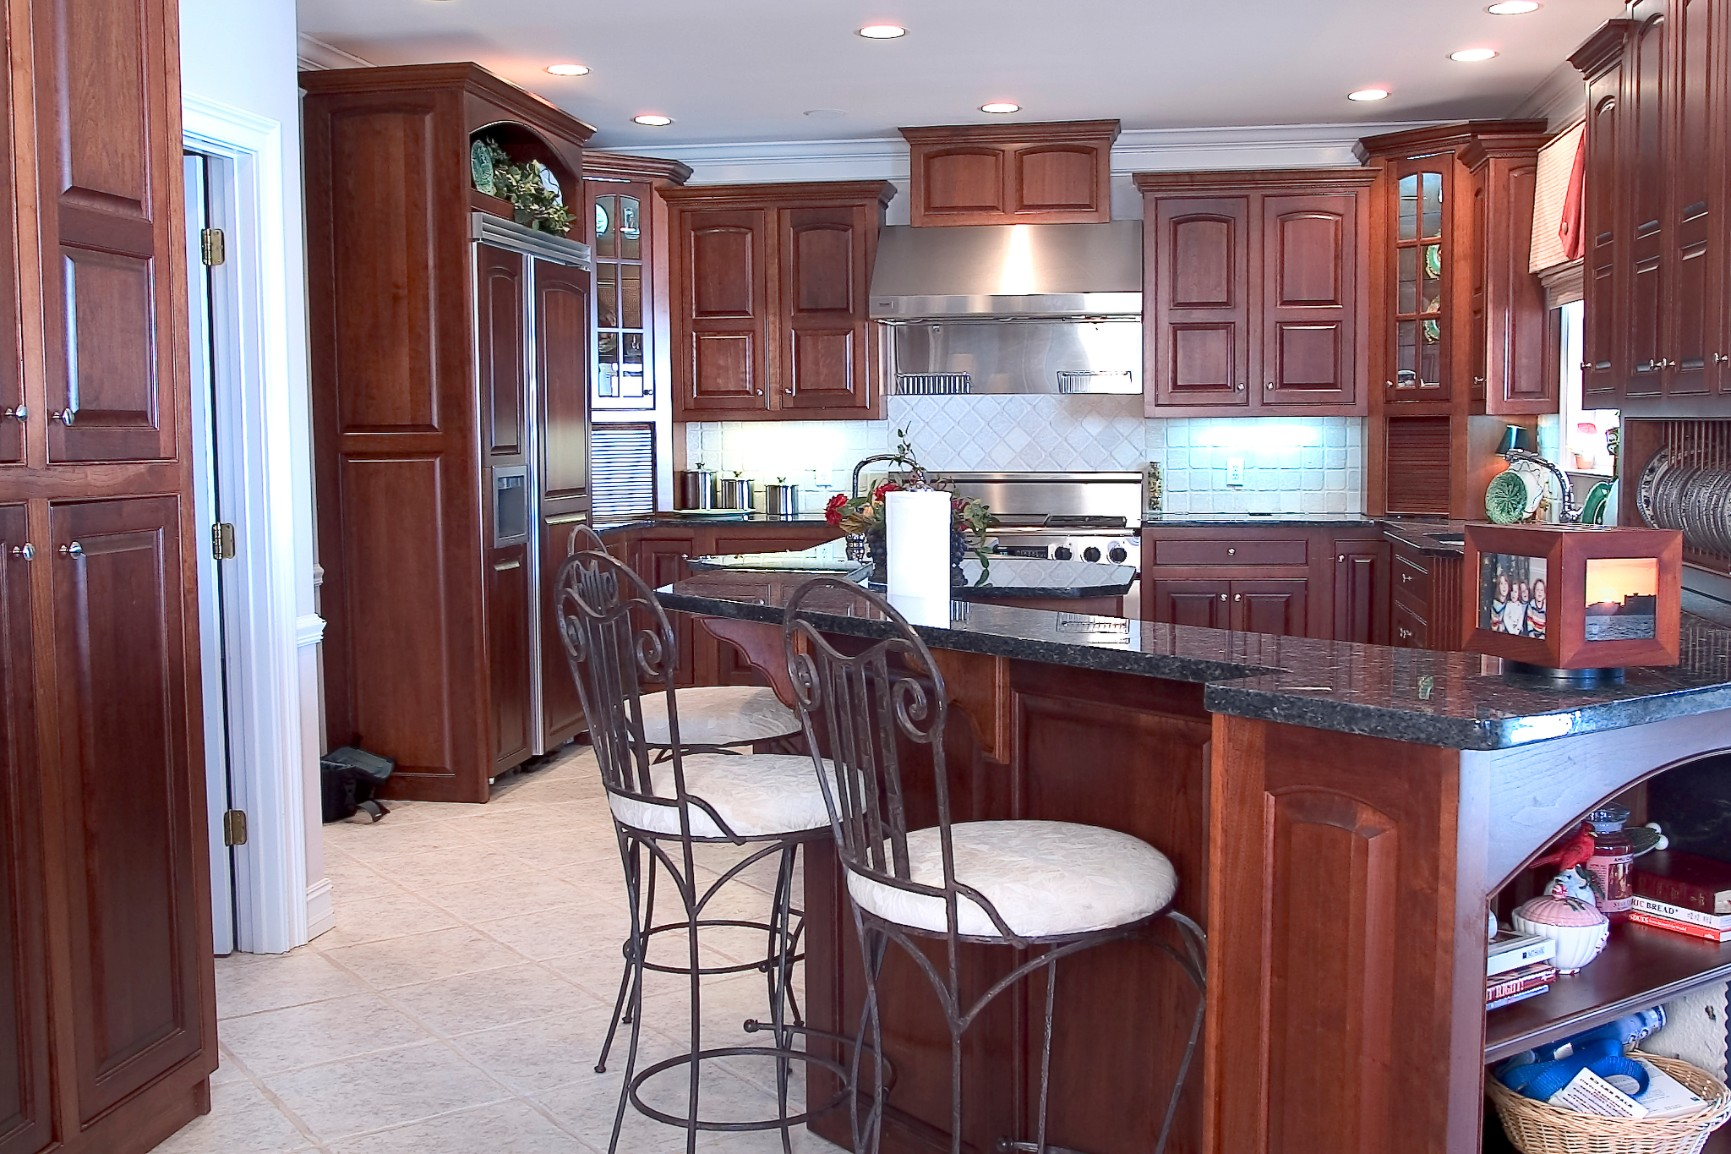 Kitchen Cabinets Cherry Wood Wood Hollow Cherry Kitchens 8 Wood Hollow Cabinets